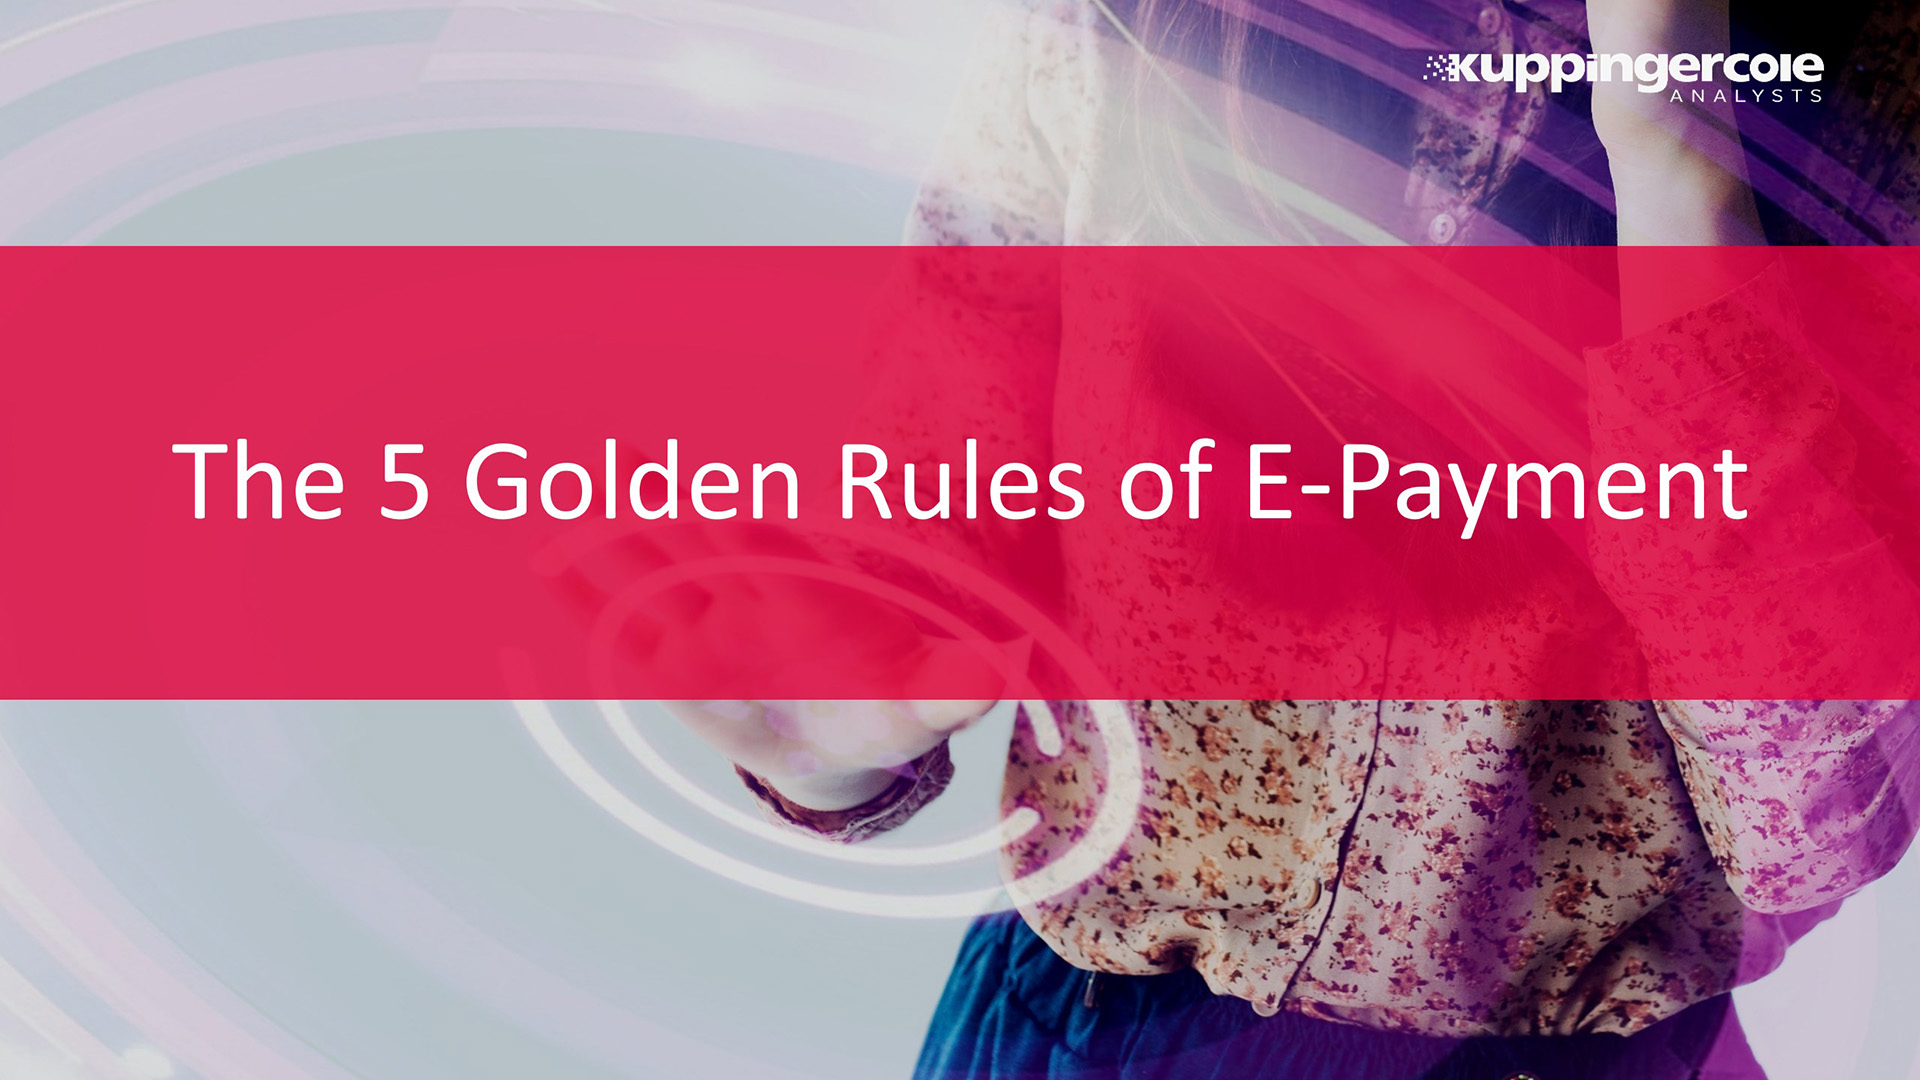 The 5 Golden Rules of E-Payment